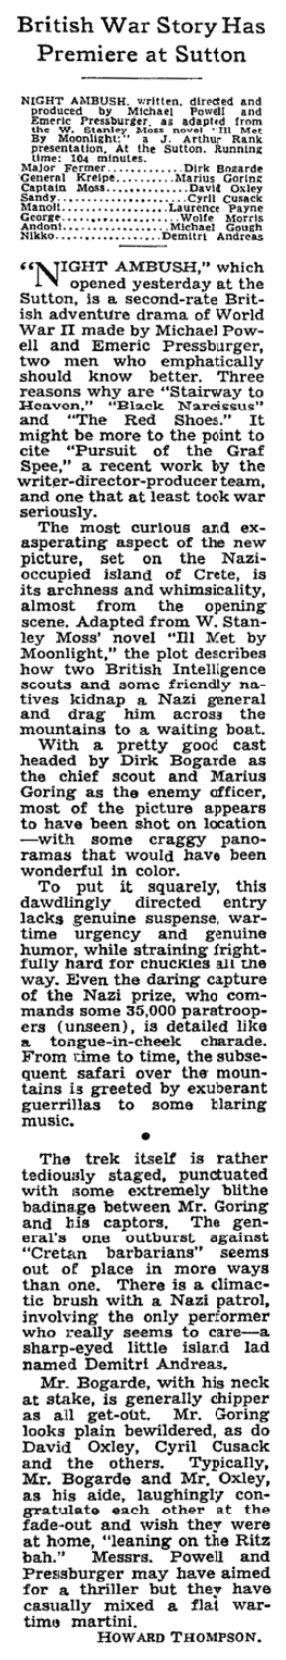 Night Ambush (Ill Met by Moonlight) review in The New York Times 25 April 1958